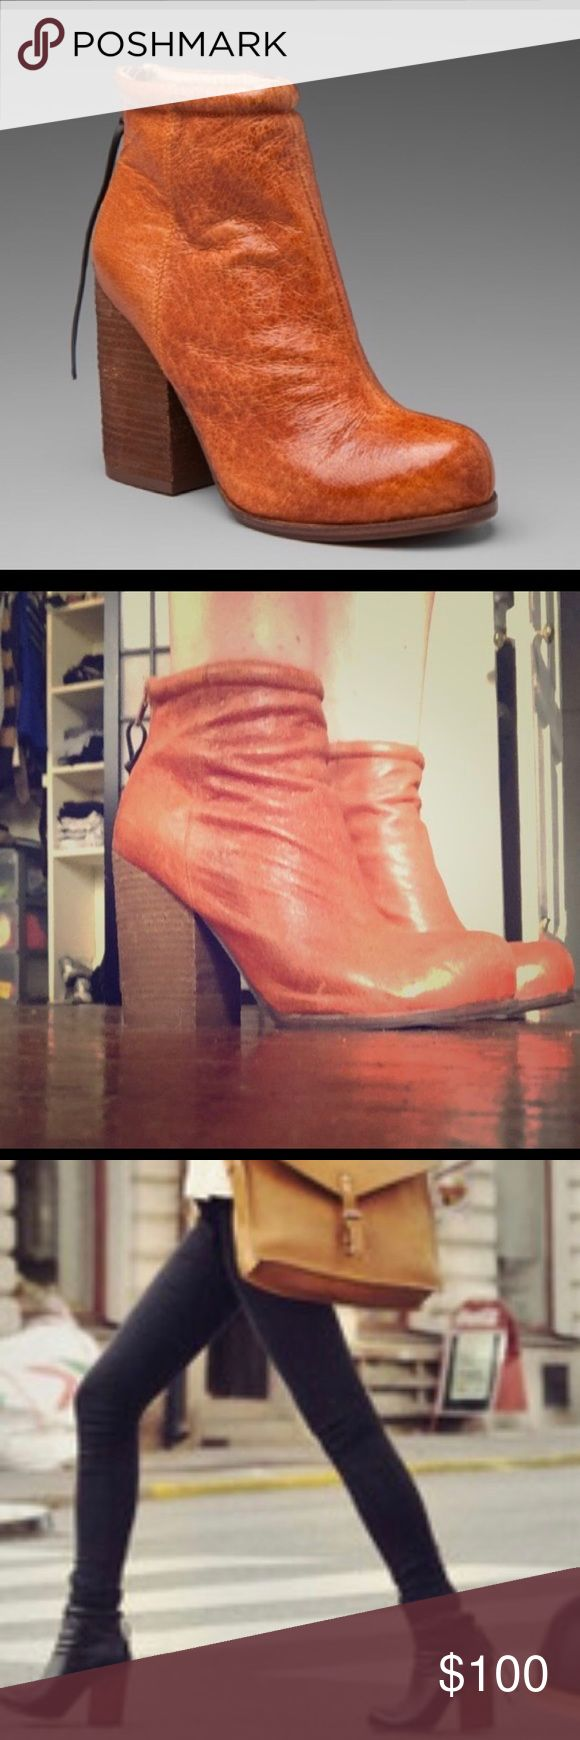 Jeffrey Cambell Rumble Booties brown leather Brown leather Rumble booties only worn a handful of times, which means they're broken in! They were a little stiff and uncomfortable to begin with but now are soft and comfy! Block heel, very little signs of wear, zip closure in back. Size 8.5 Jeffrey Campbell Shoes Ankle Boots & Booties